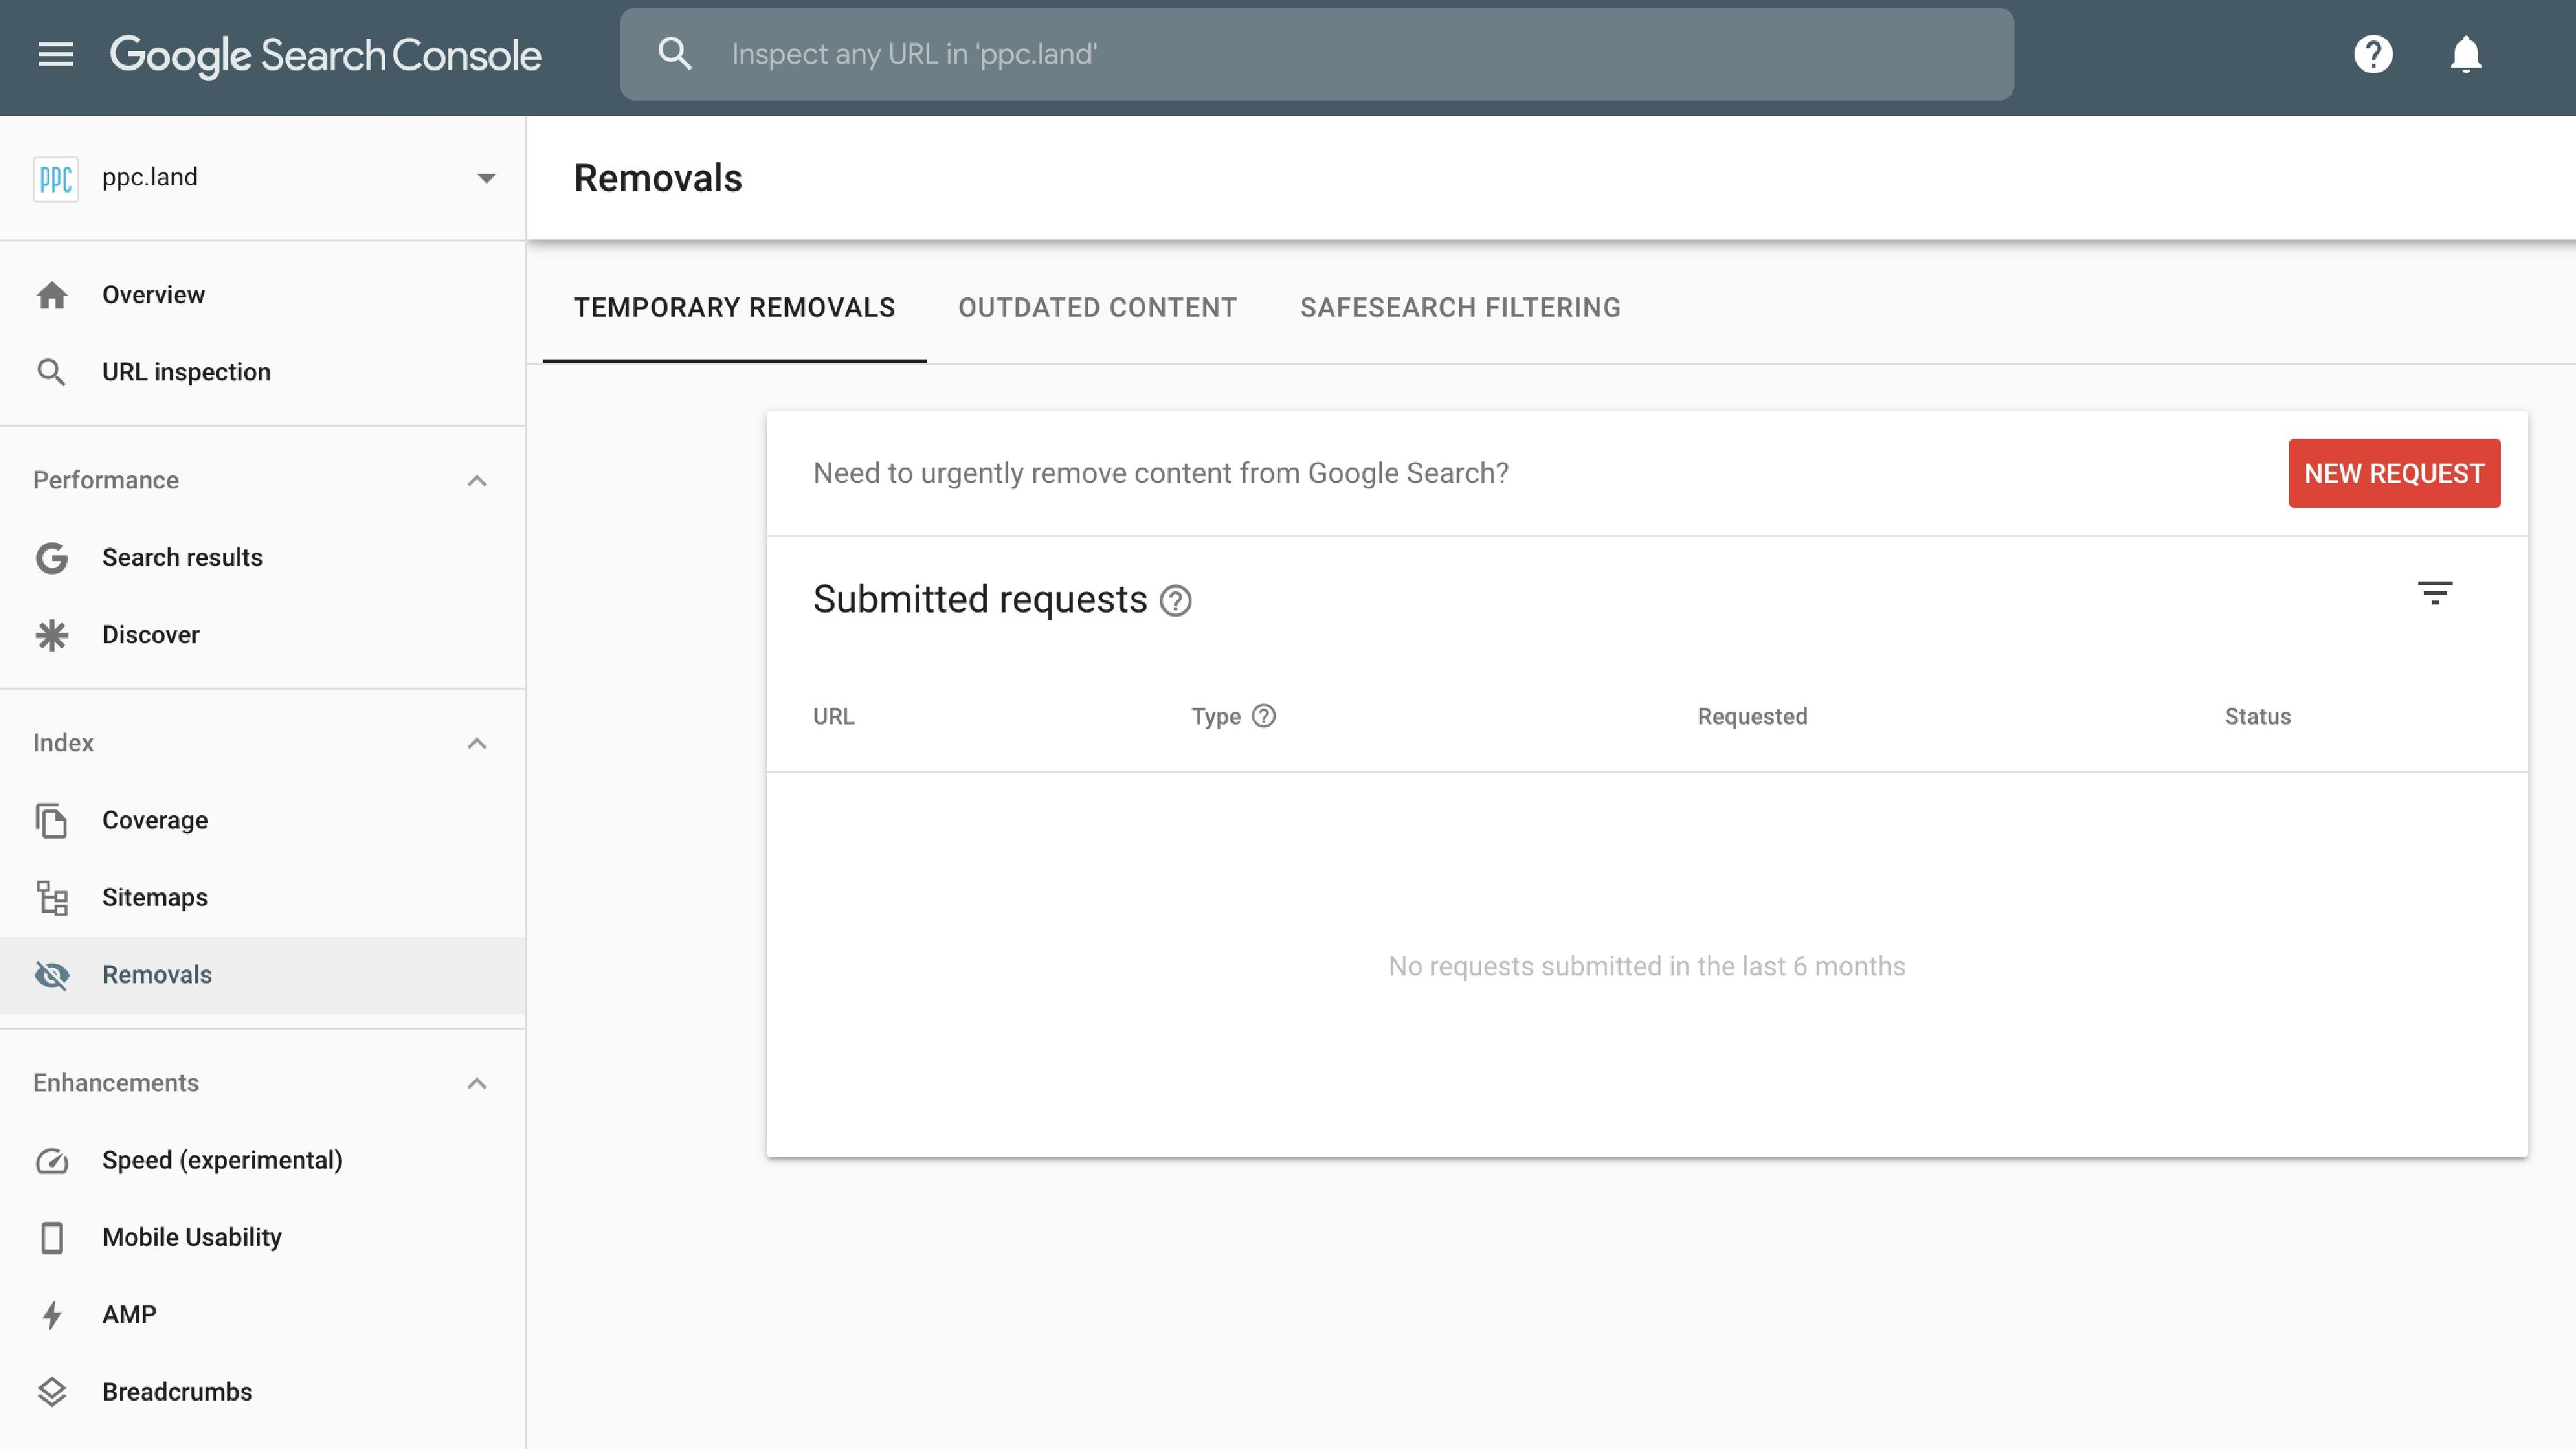 Google Launches A New Version Of The Removals Report In Search